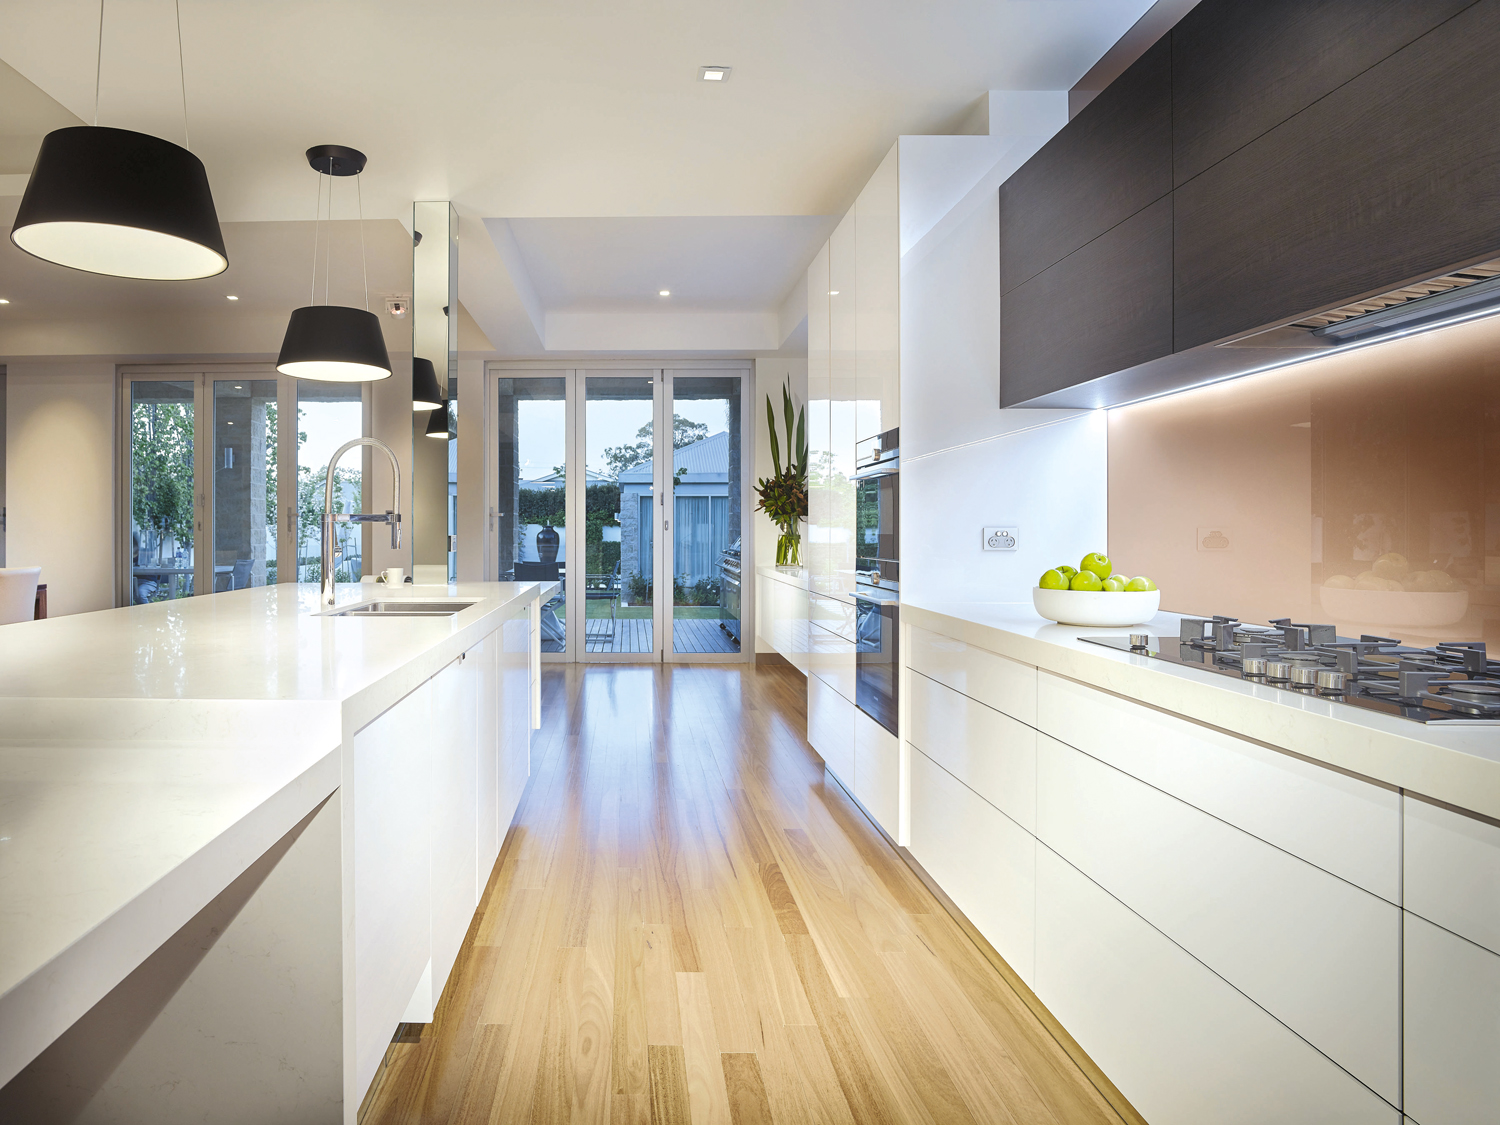 We love this kitchen renovation project